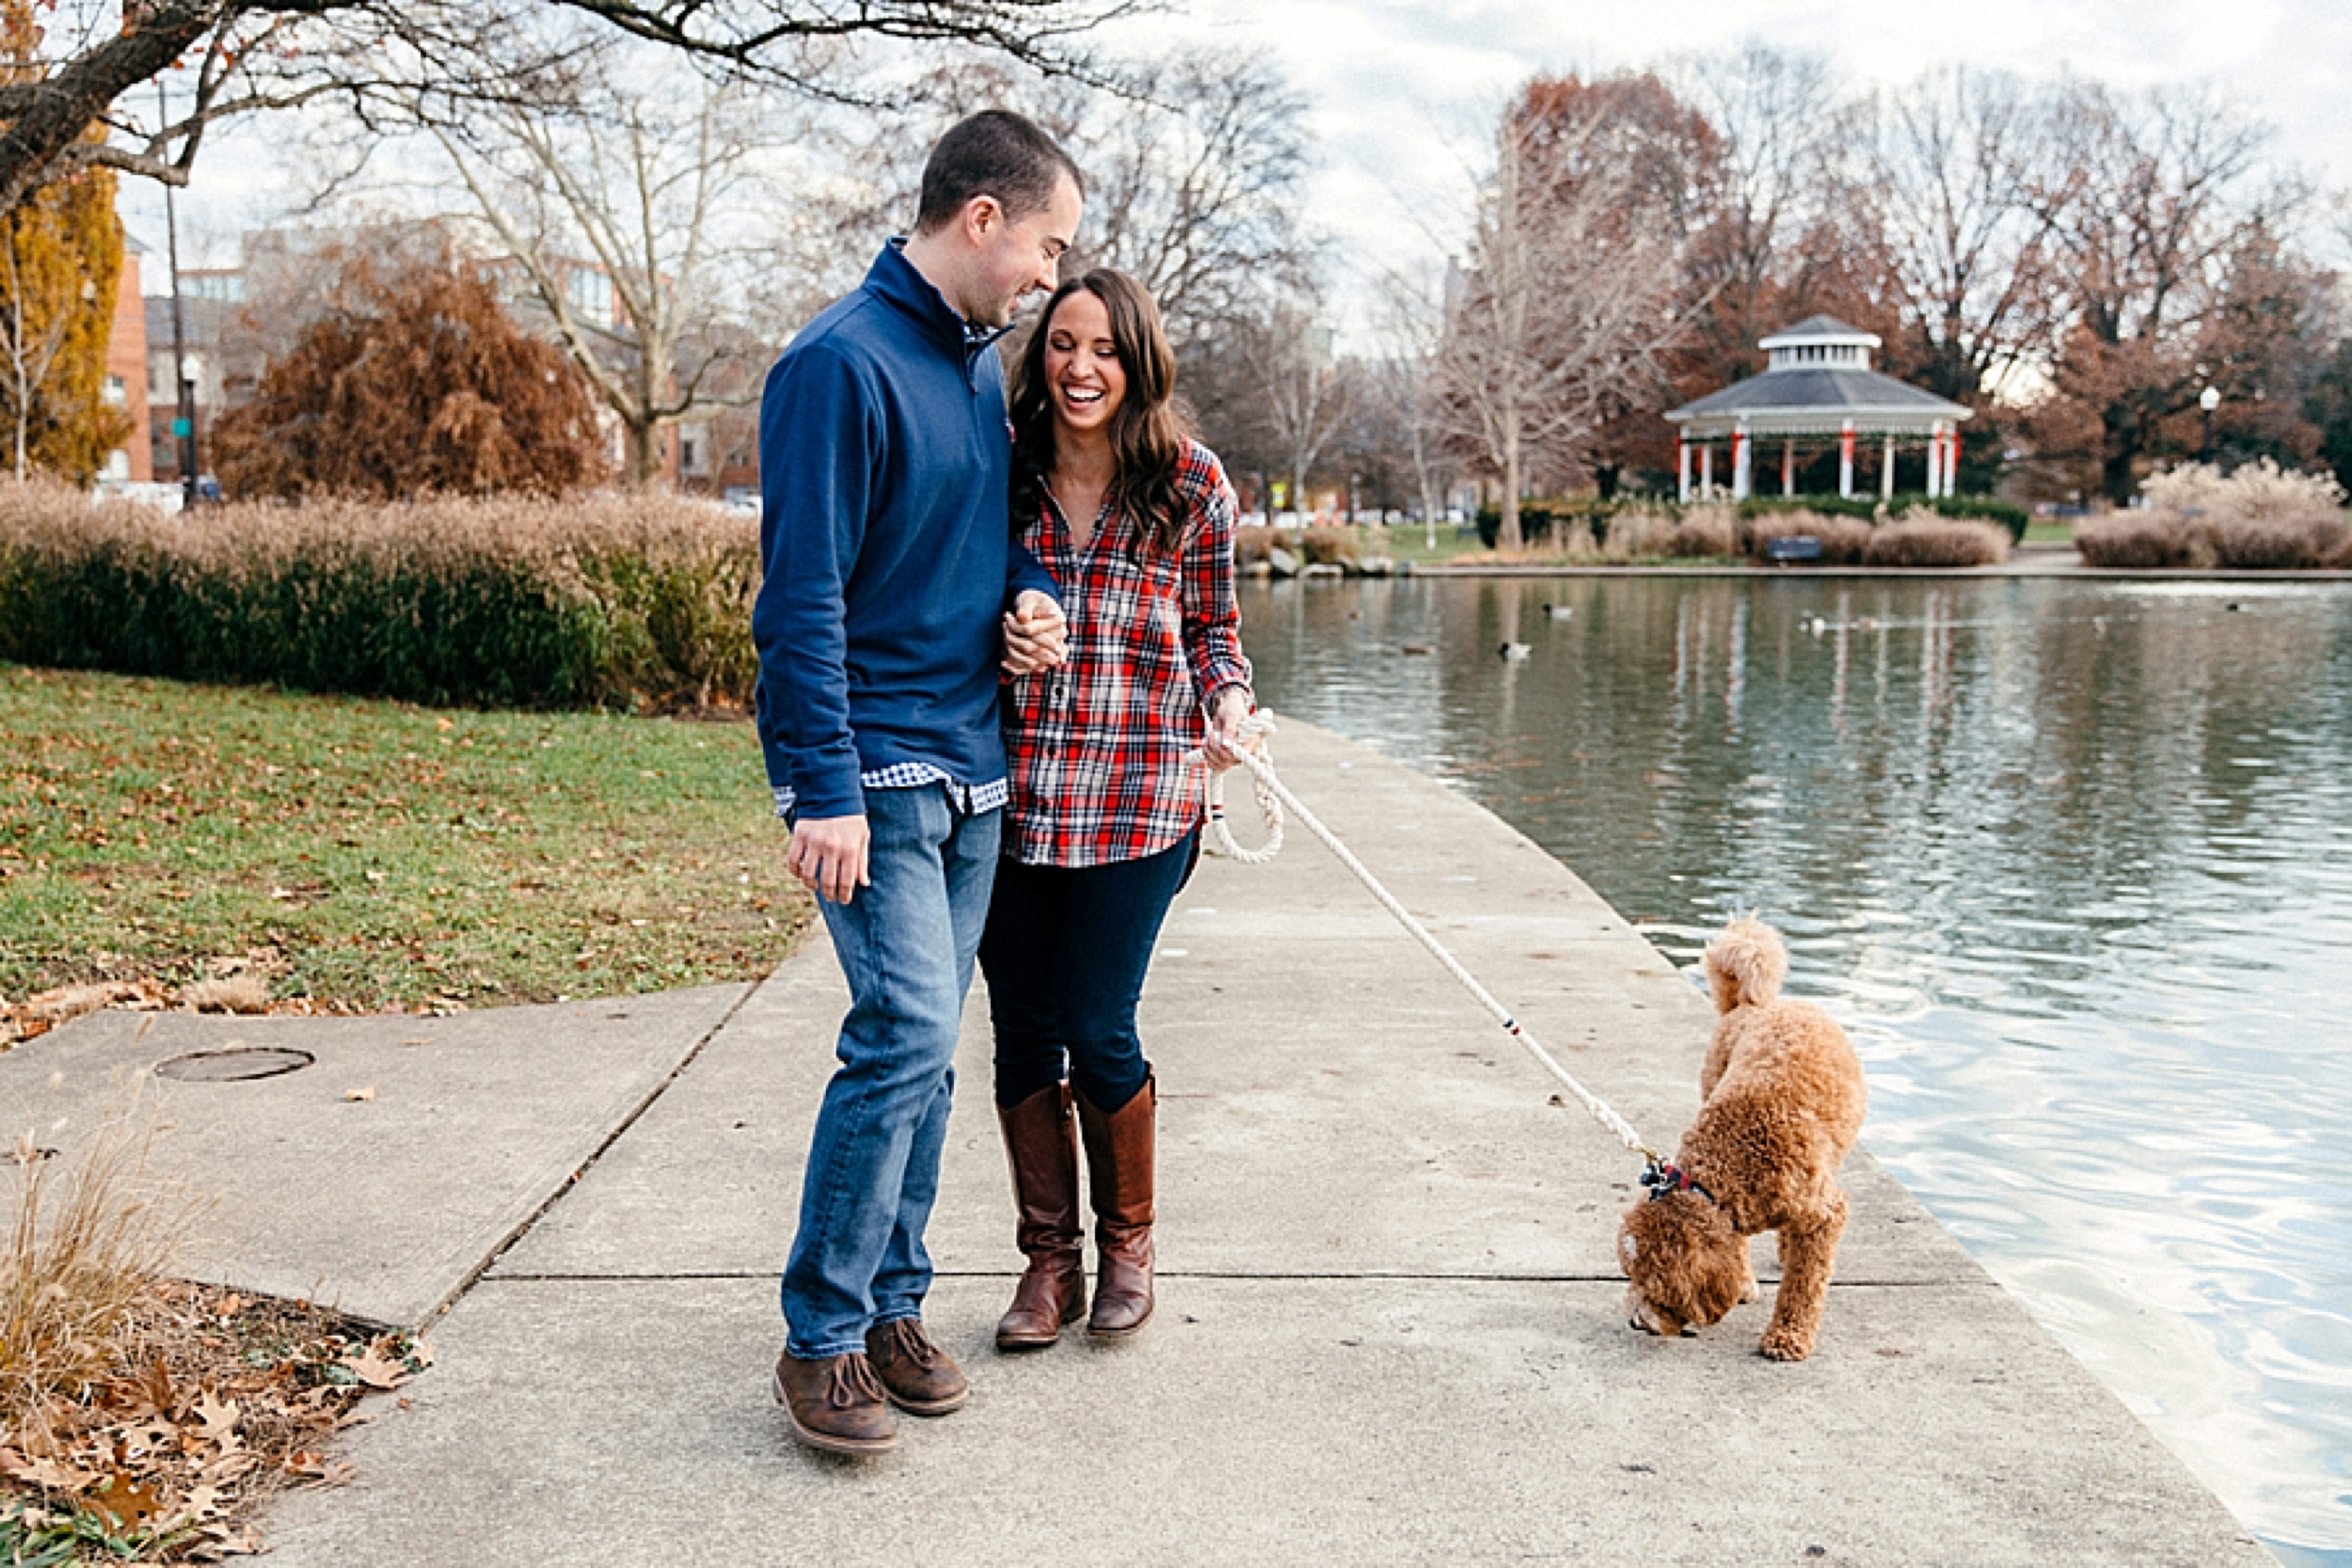 midwest-michigan-indiana-engagement-and-wedding-photographer-session-in-columbus-ohio_0003.jpg